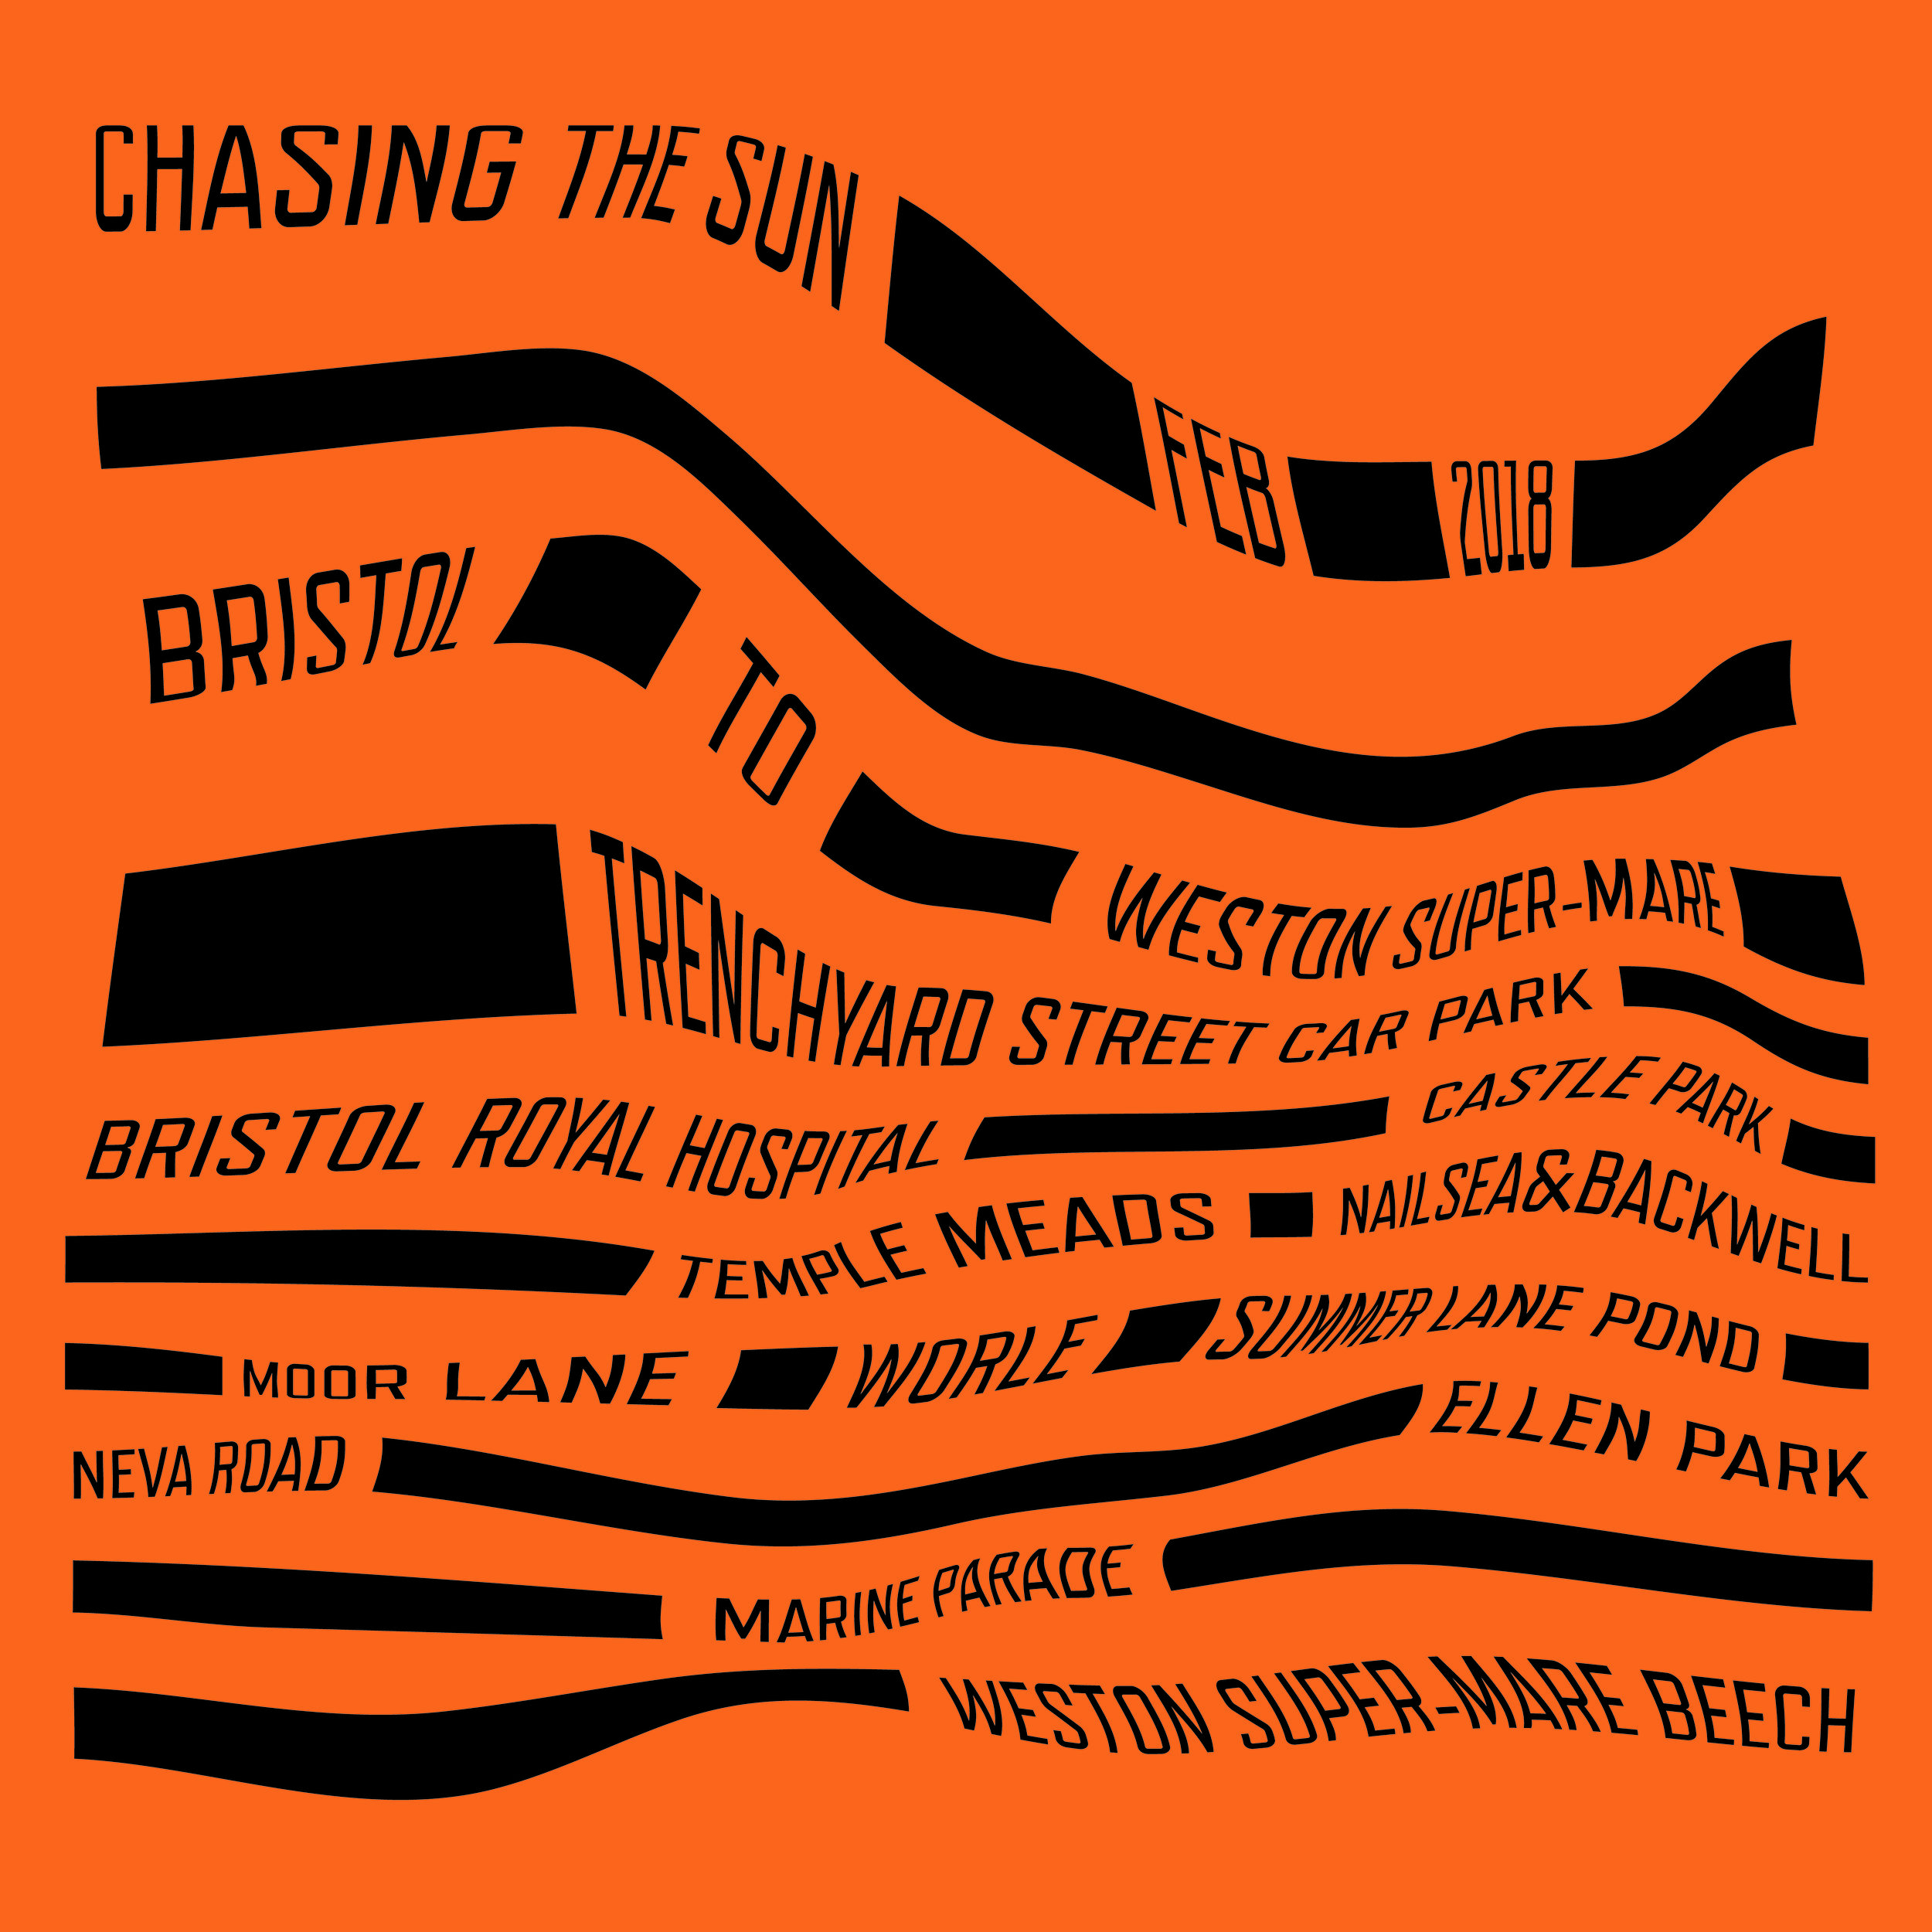 Chasing The Sun experimental poster